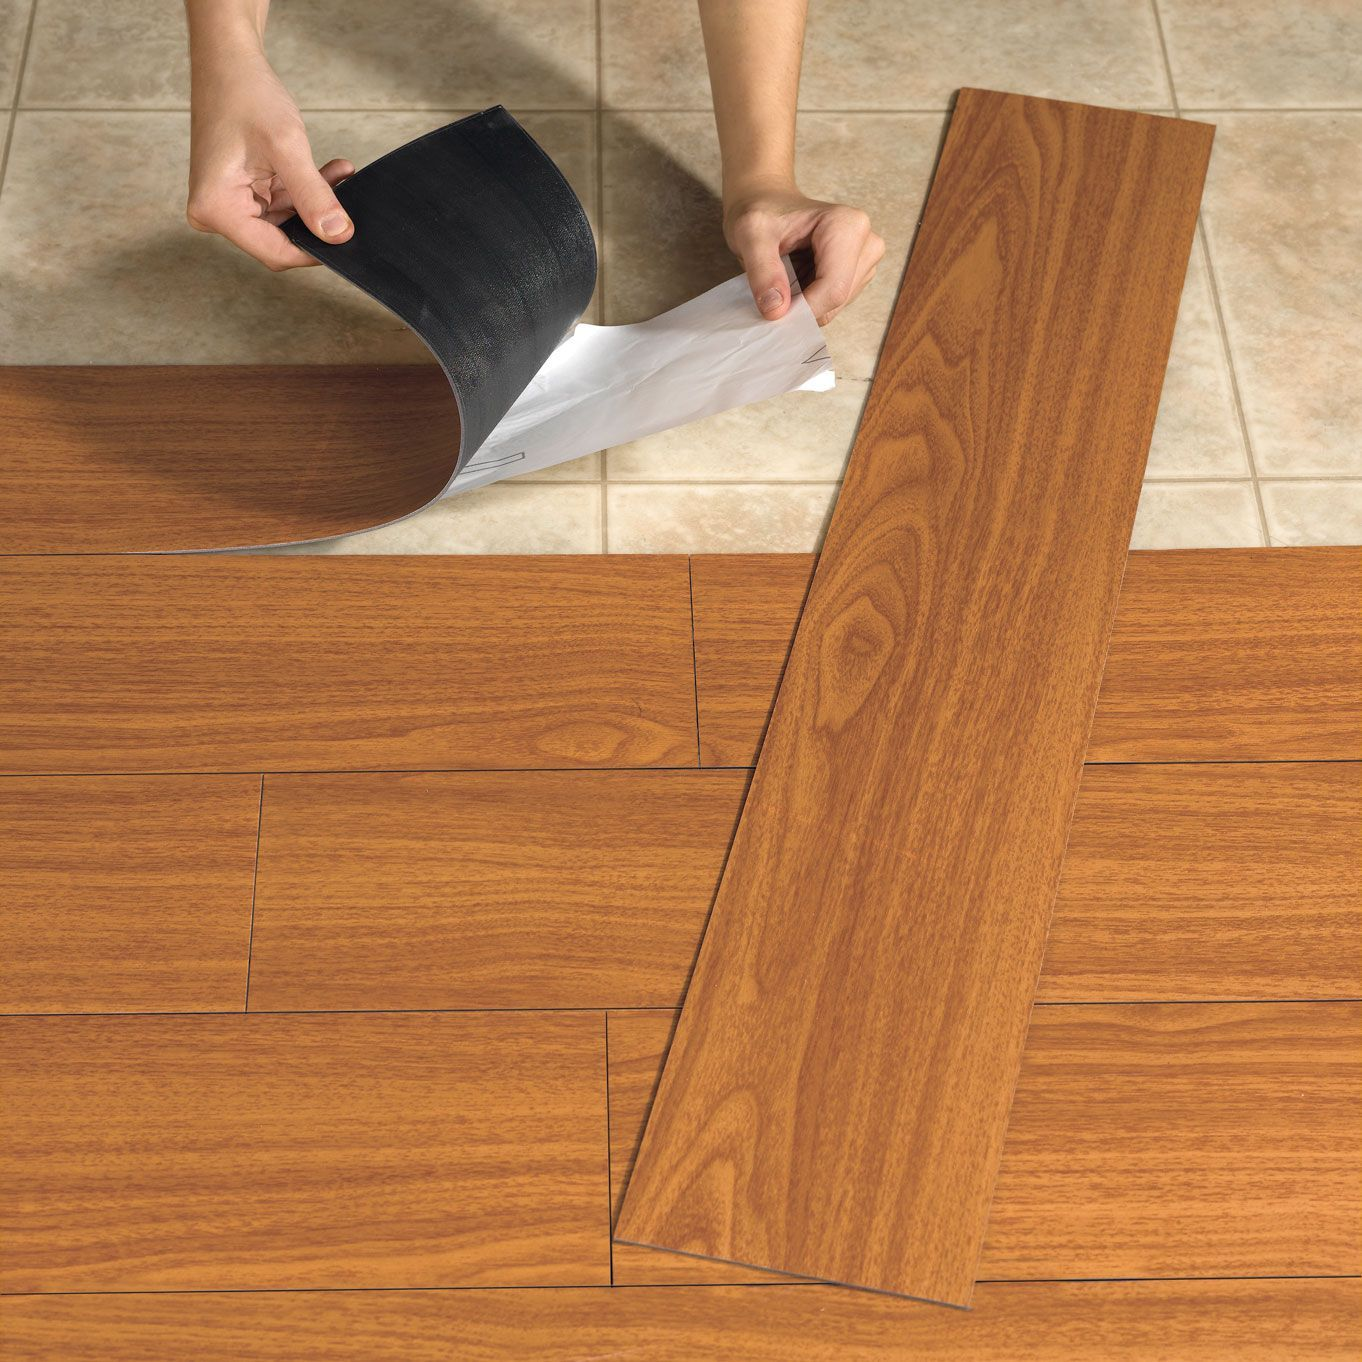 Vinyl Tile Or Vinyl Planks Give The Installer More Flexibility For Creativity And Design Vinyl Tile Is Usually A L Peel And Stick Wood Flooring Plank Flooring